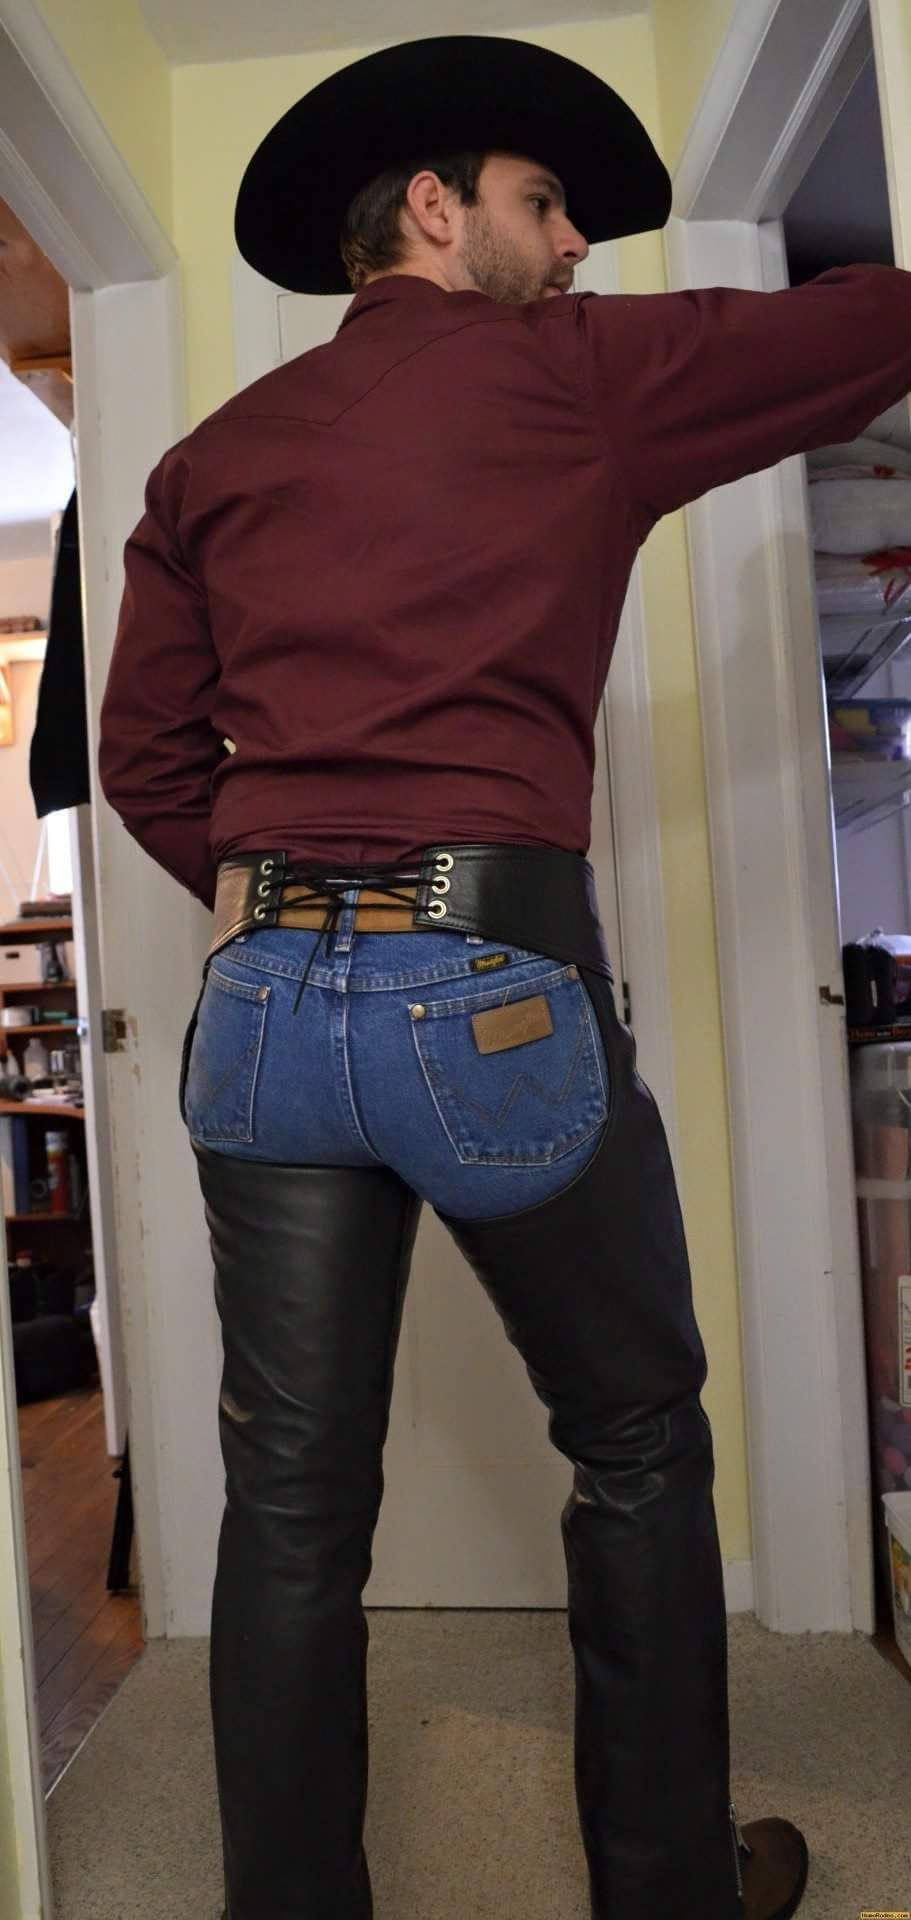 marvel on this #leathercowboy wrangler tight wrapped beefy butt